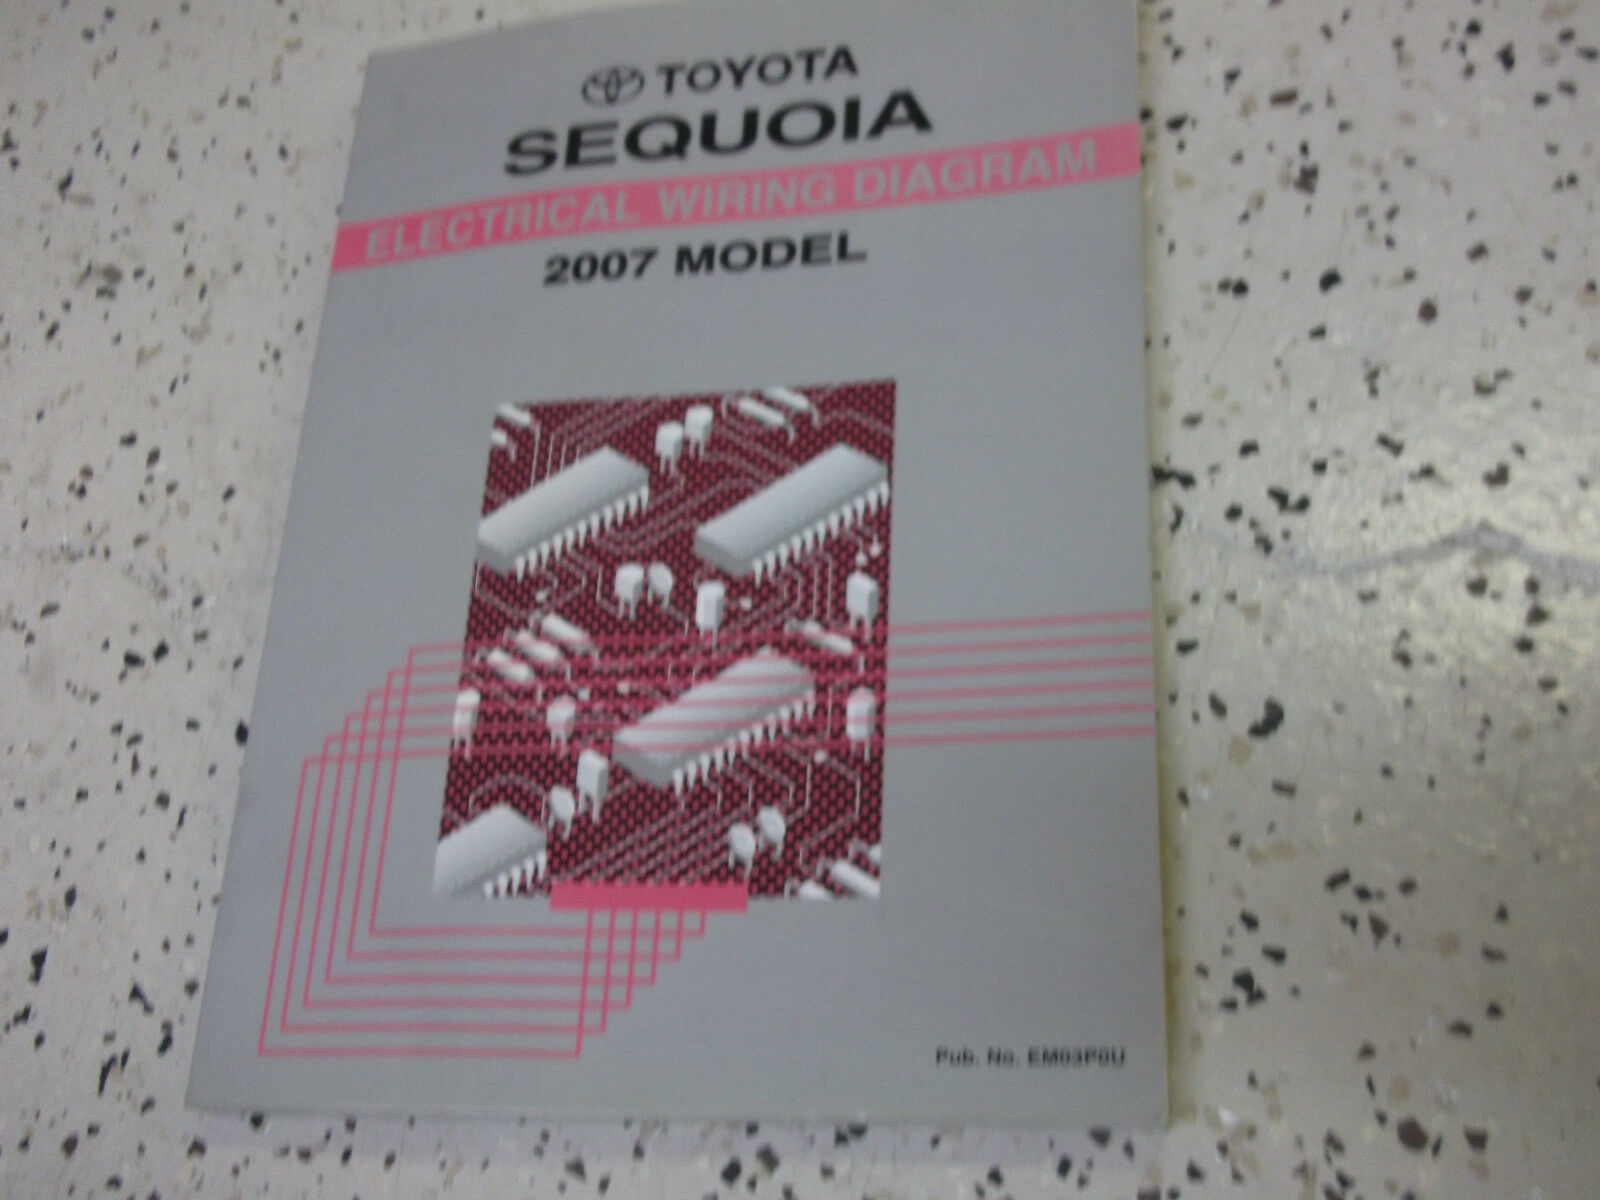 2007 Toyota Sequoia Electrical Wiring Diagram Service Shop Repair Harness Manual Ewd 07 1 Of 3free Shipping